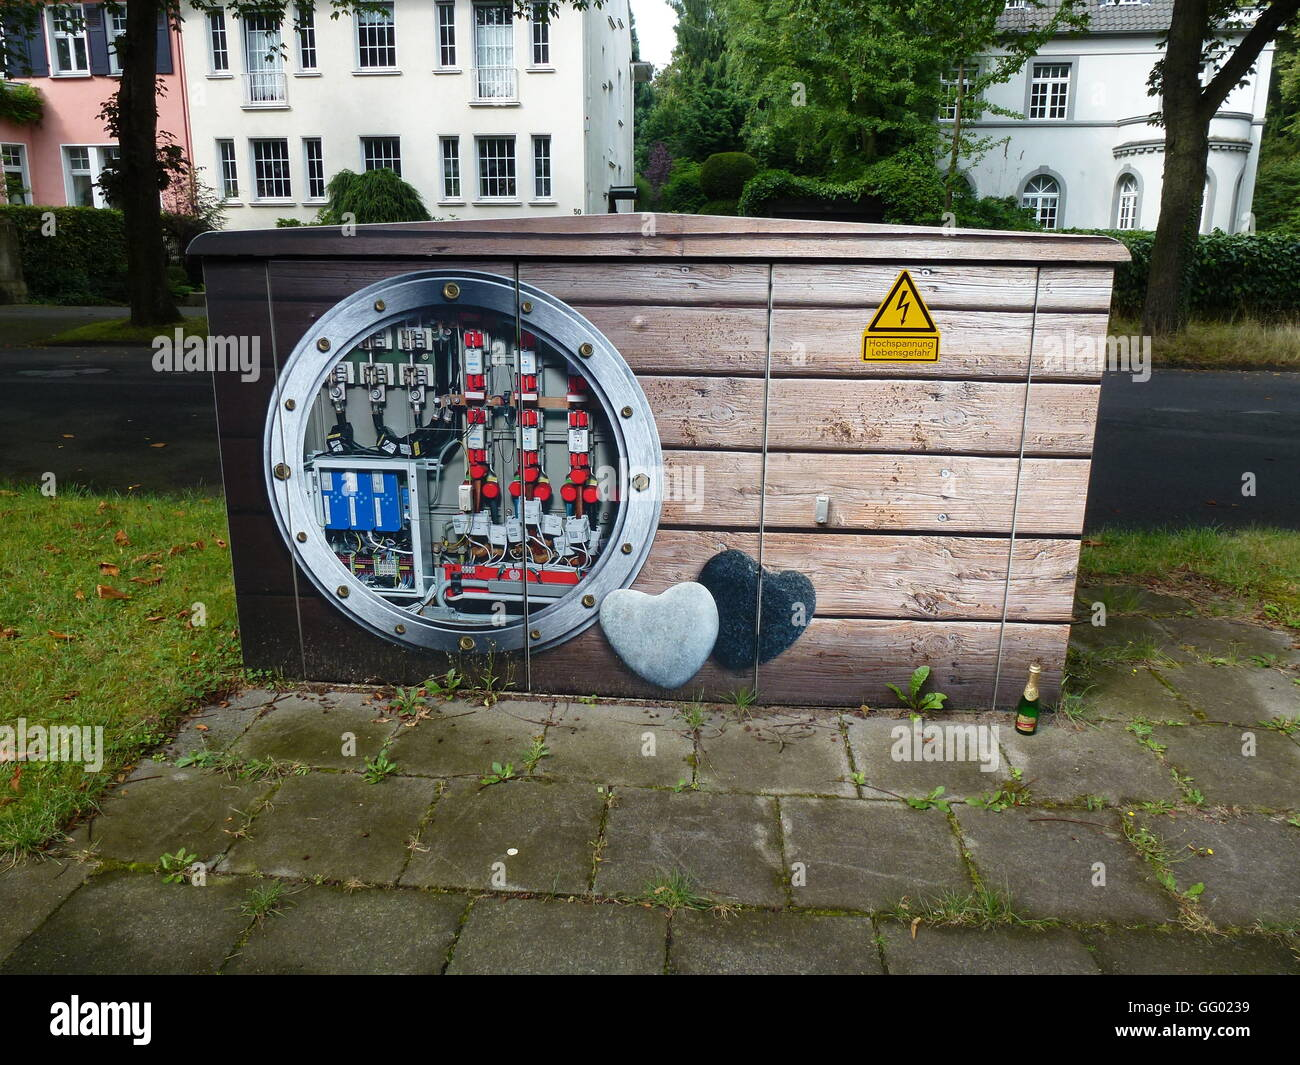 An electrical substation in Cologne, Germany, 31 July 2016. RheinEnergie is sprucing up the substations with artistic - Stock Image